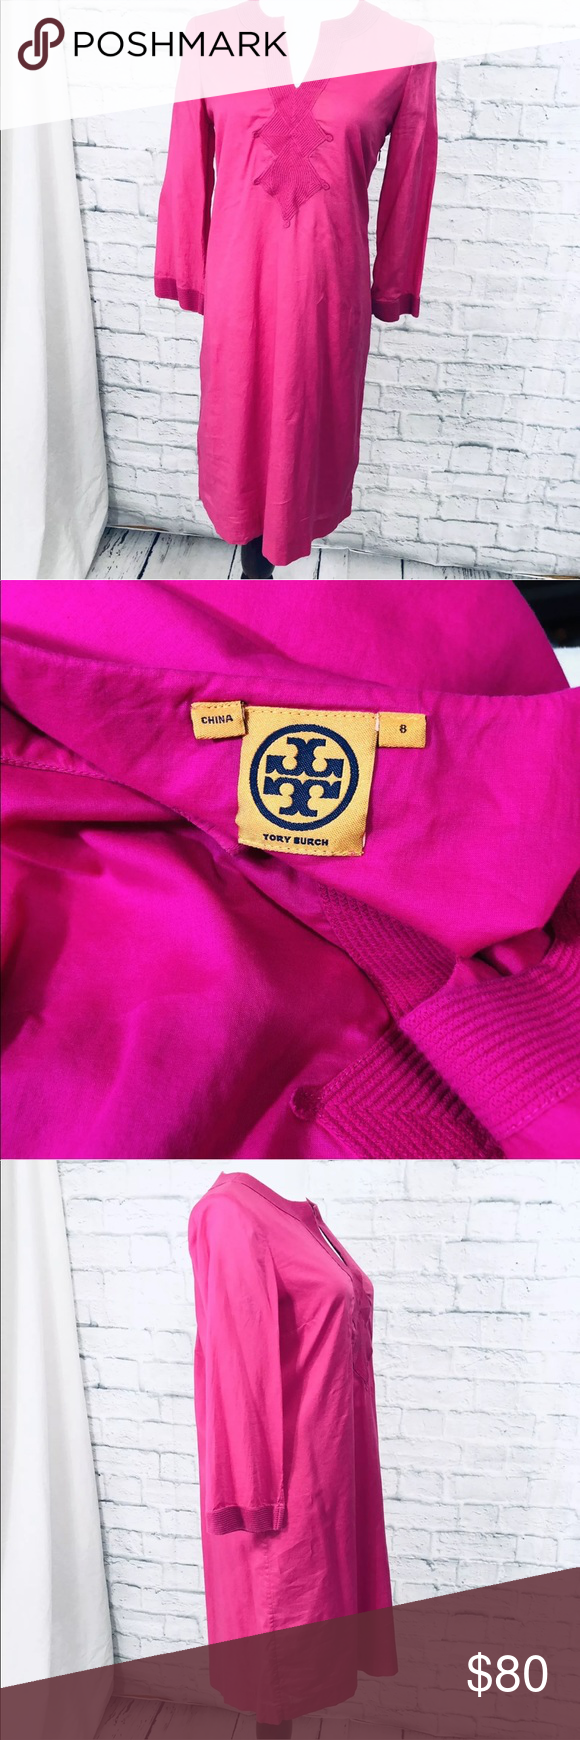 "bdb5e0fccd2cf Tory Burch 8 dress pink tunic resort caftan cotton 100% authentic Caftan  resort wear Very nice condition No flaws found Bust 39"" Waist 37"" Hips 39""  Length ..."